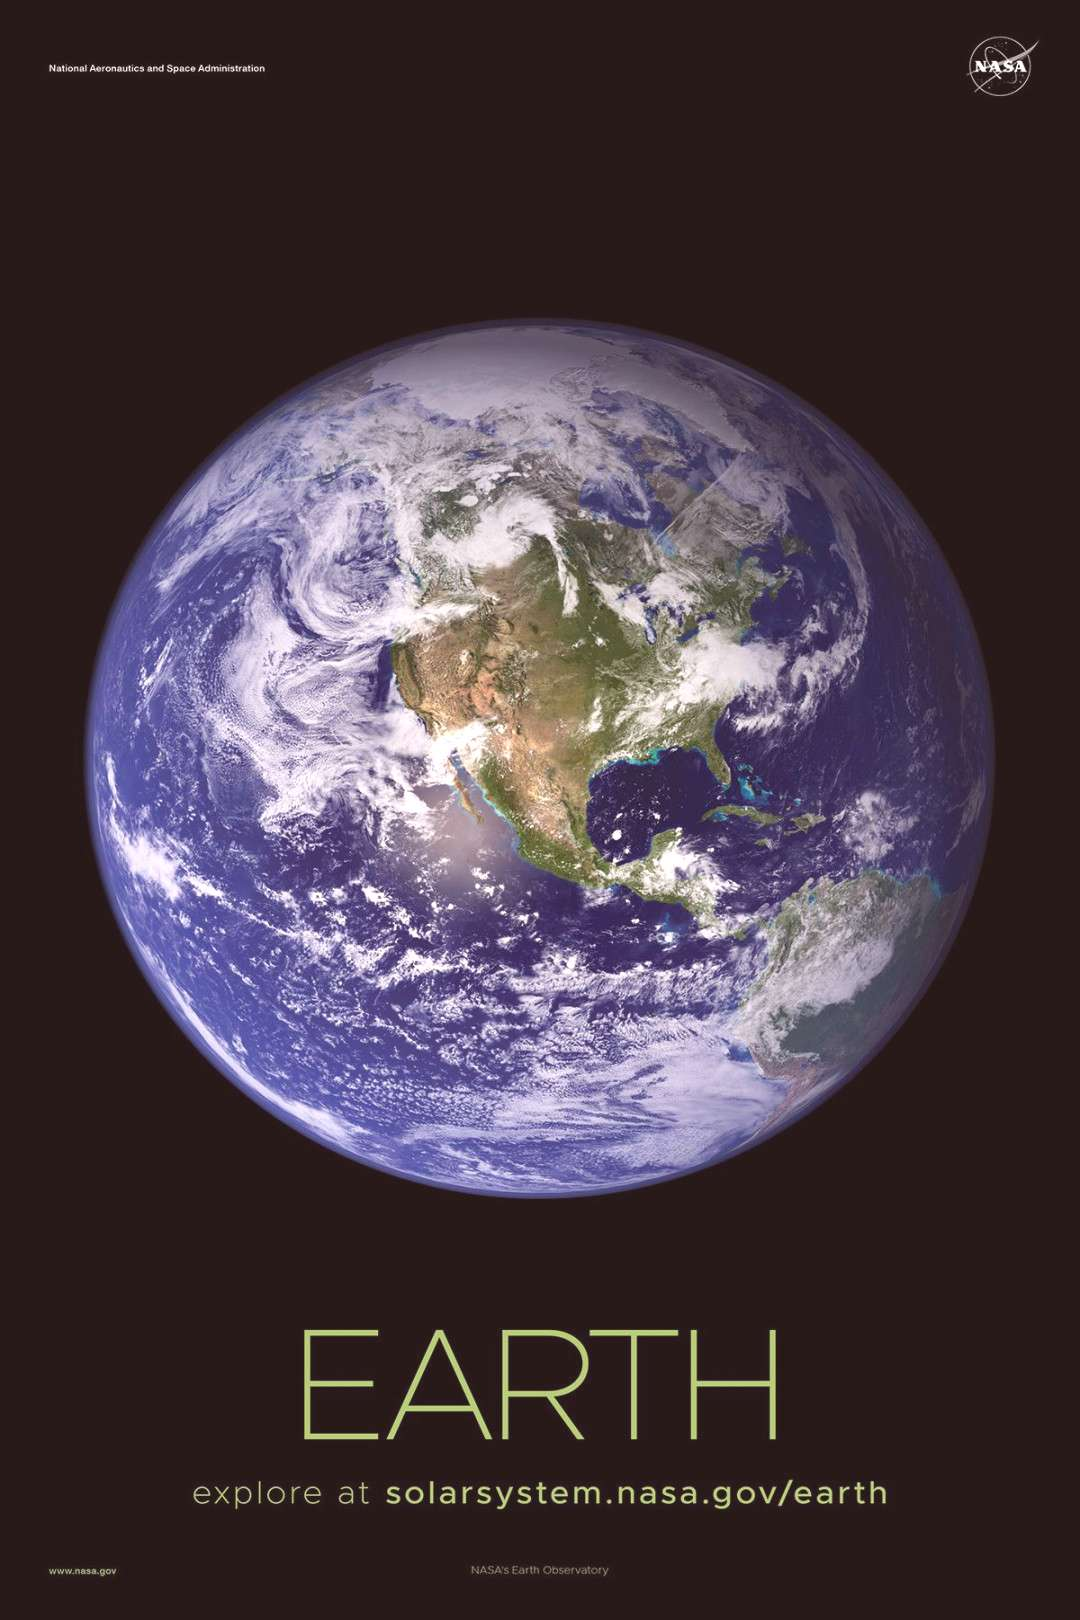 Version A of the Earthinstallment of our solar system poster series.